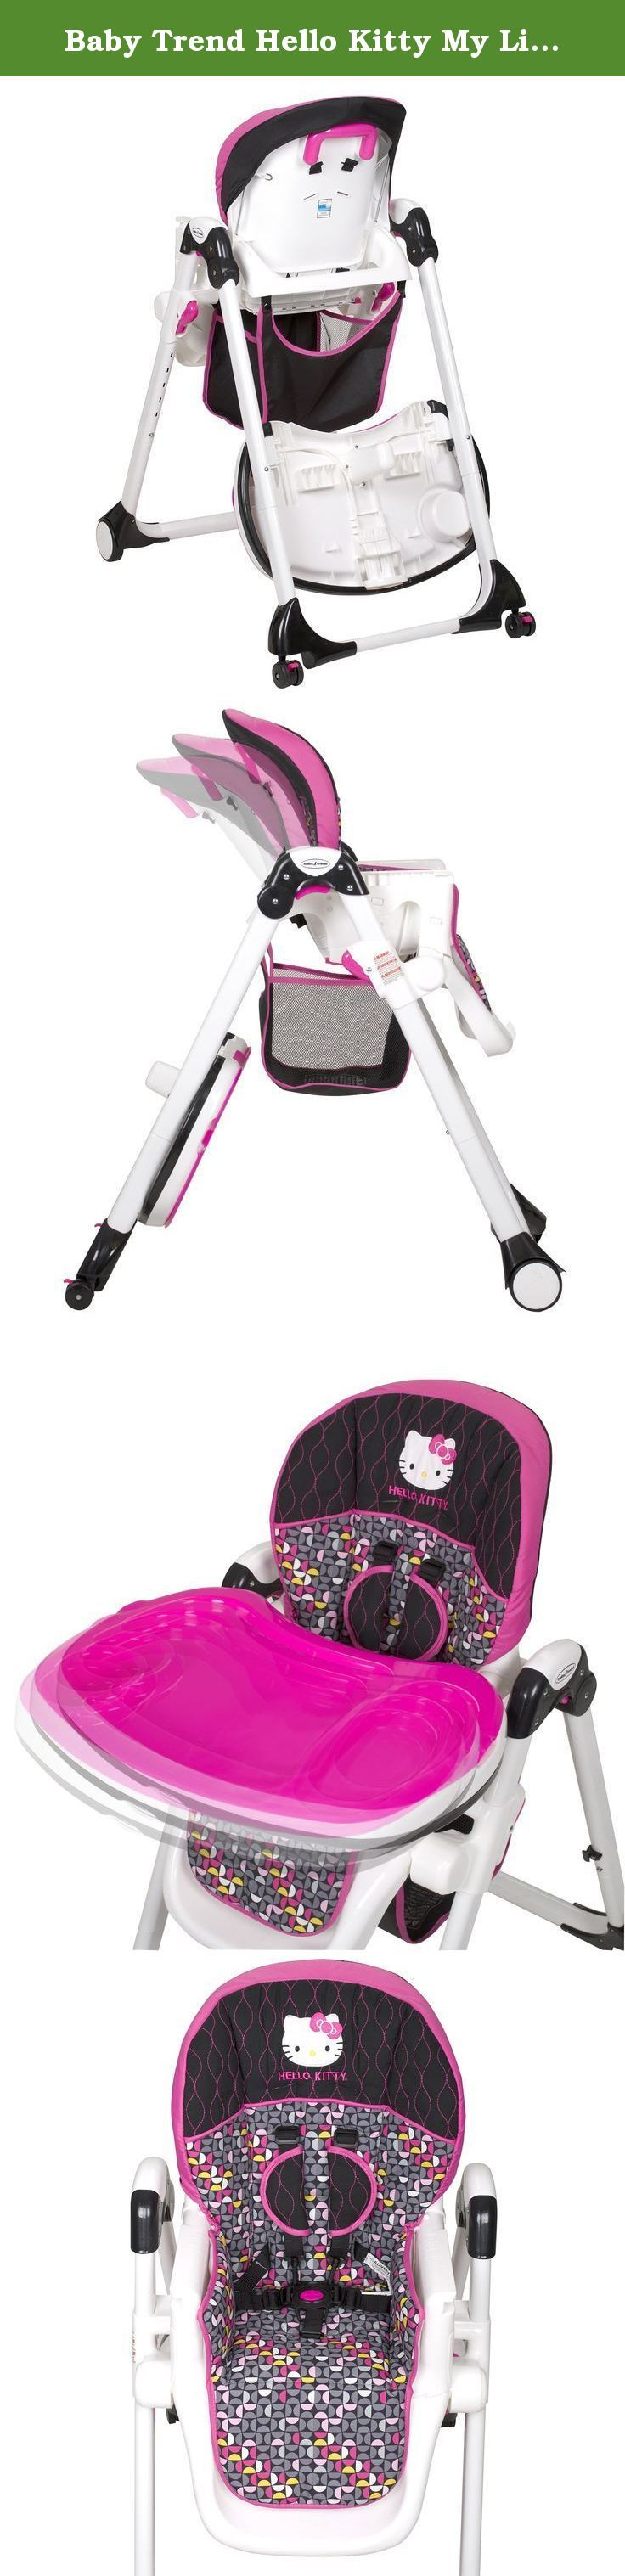 Baby Trend Hello Kitty My Lift High Chair, Pinwheel. The Baby Trend My lift High Chair - Hello Kitty Pin Wheel, FEATURES include: 3-position seat recline, 6-position height adjustment, 5-point safety harness, Dishwasher safe serving tray, Compact free-standing fold, Tray storage, Large castor wheels with brakes, Easy wipe-clean/washable seat pad, and Large oval tubing.